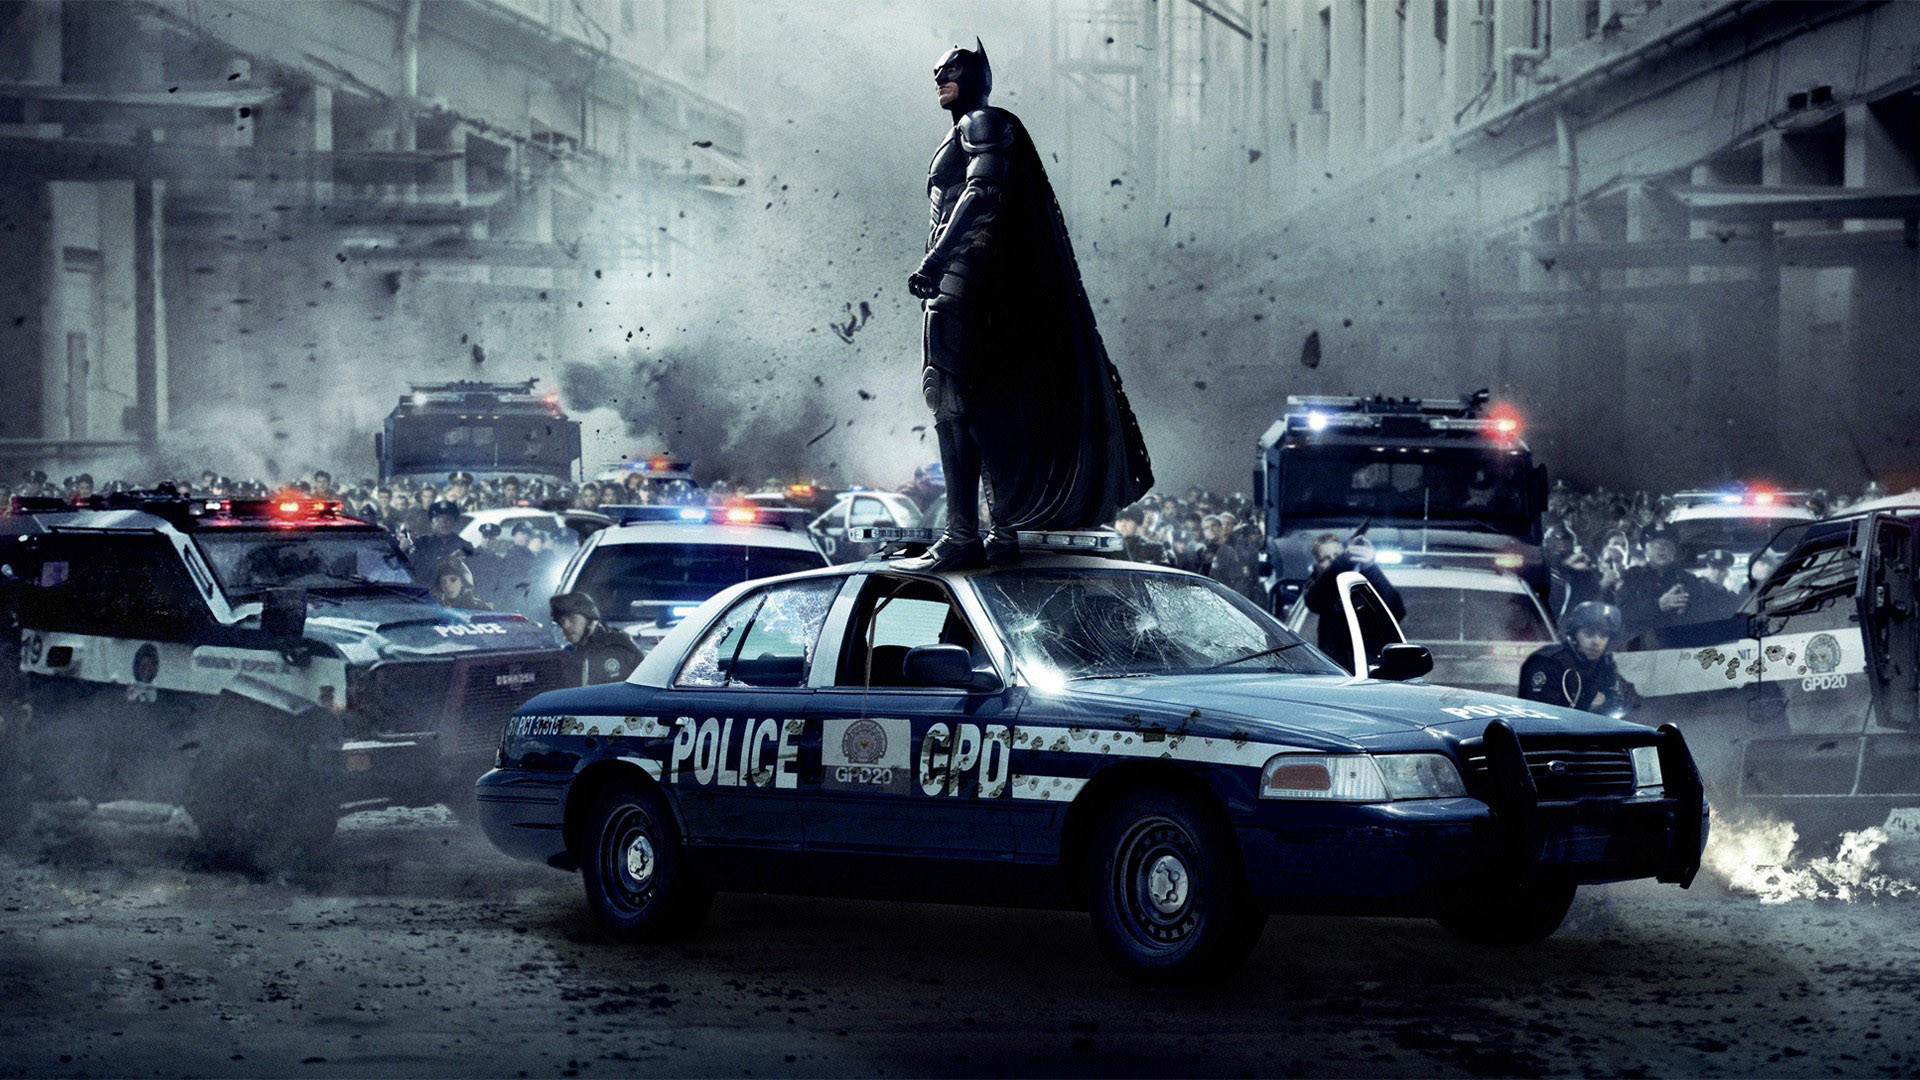 (px) – Police Wallpapers, Nickolas Boerger